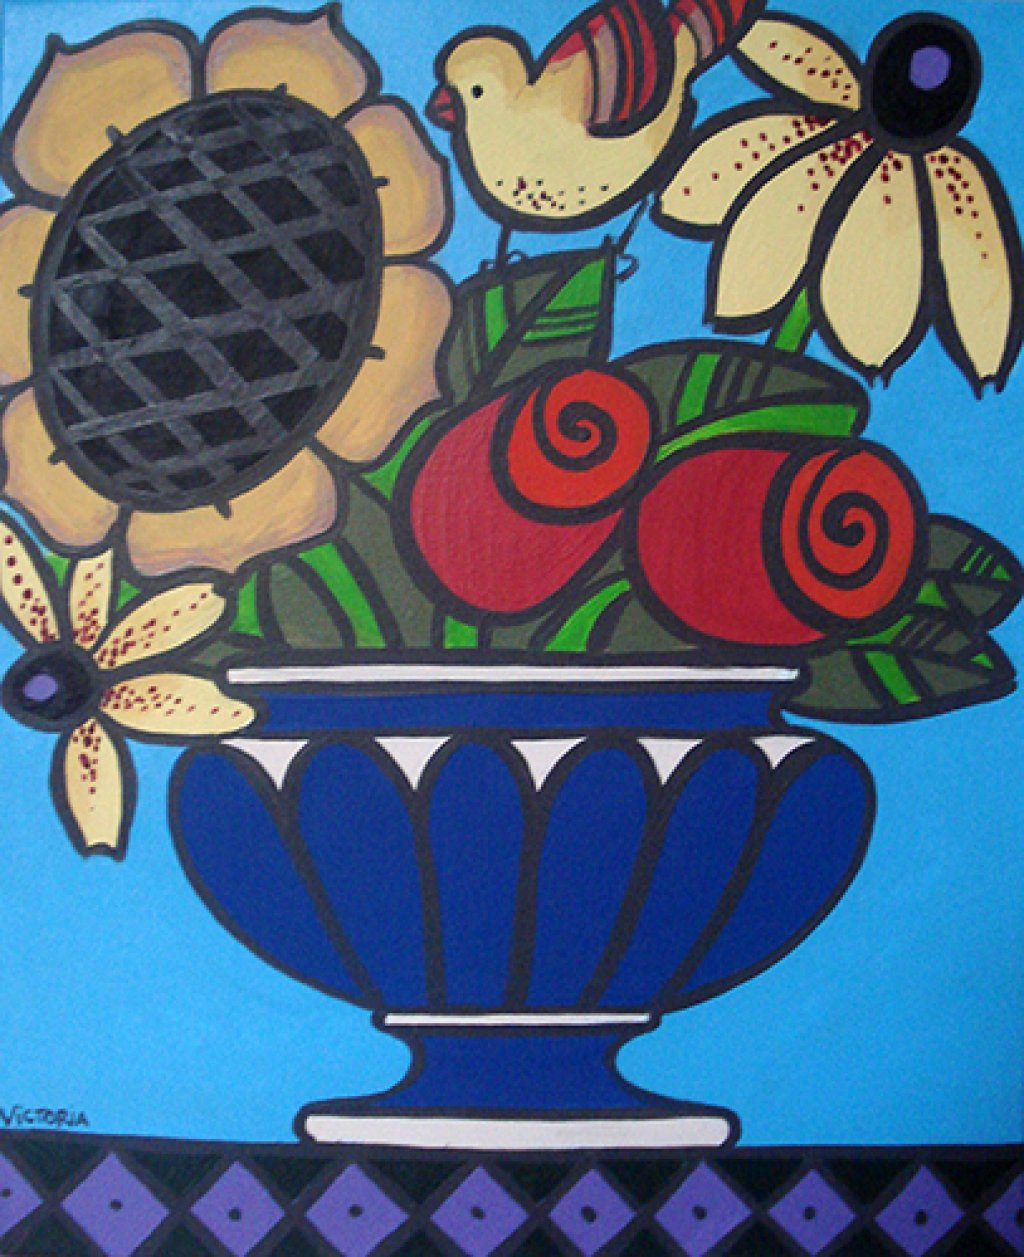 Flowers in a Blue Vase with a Bird